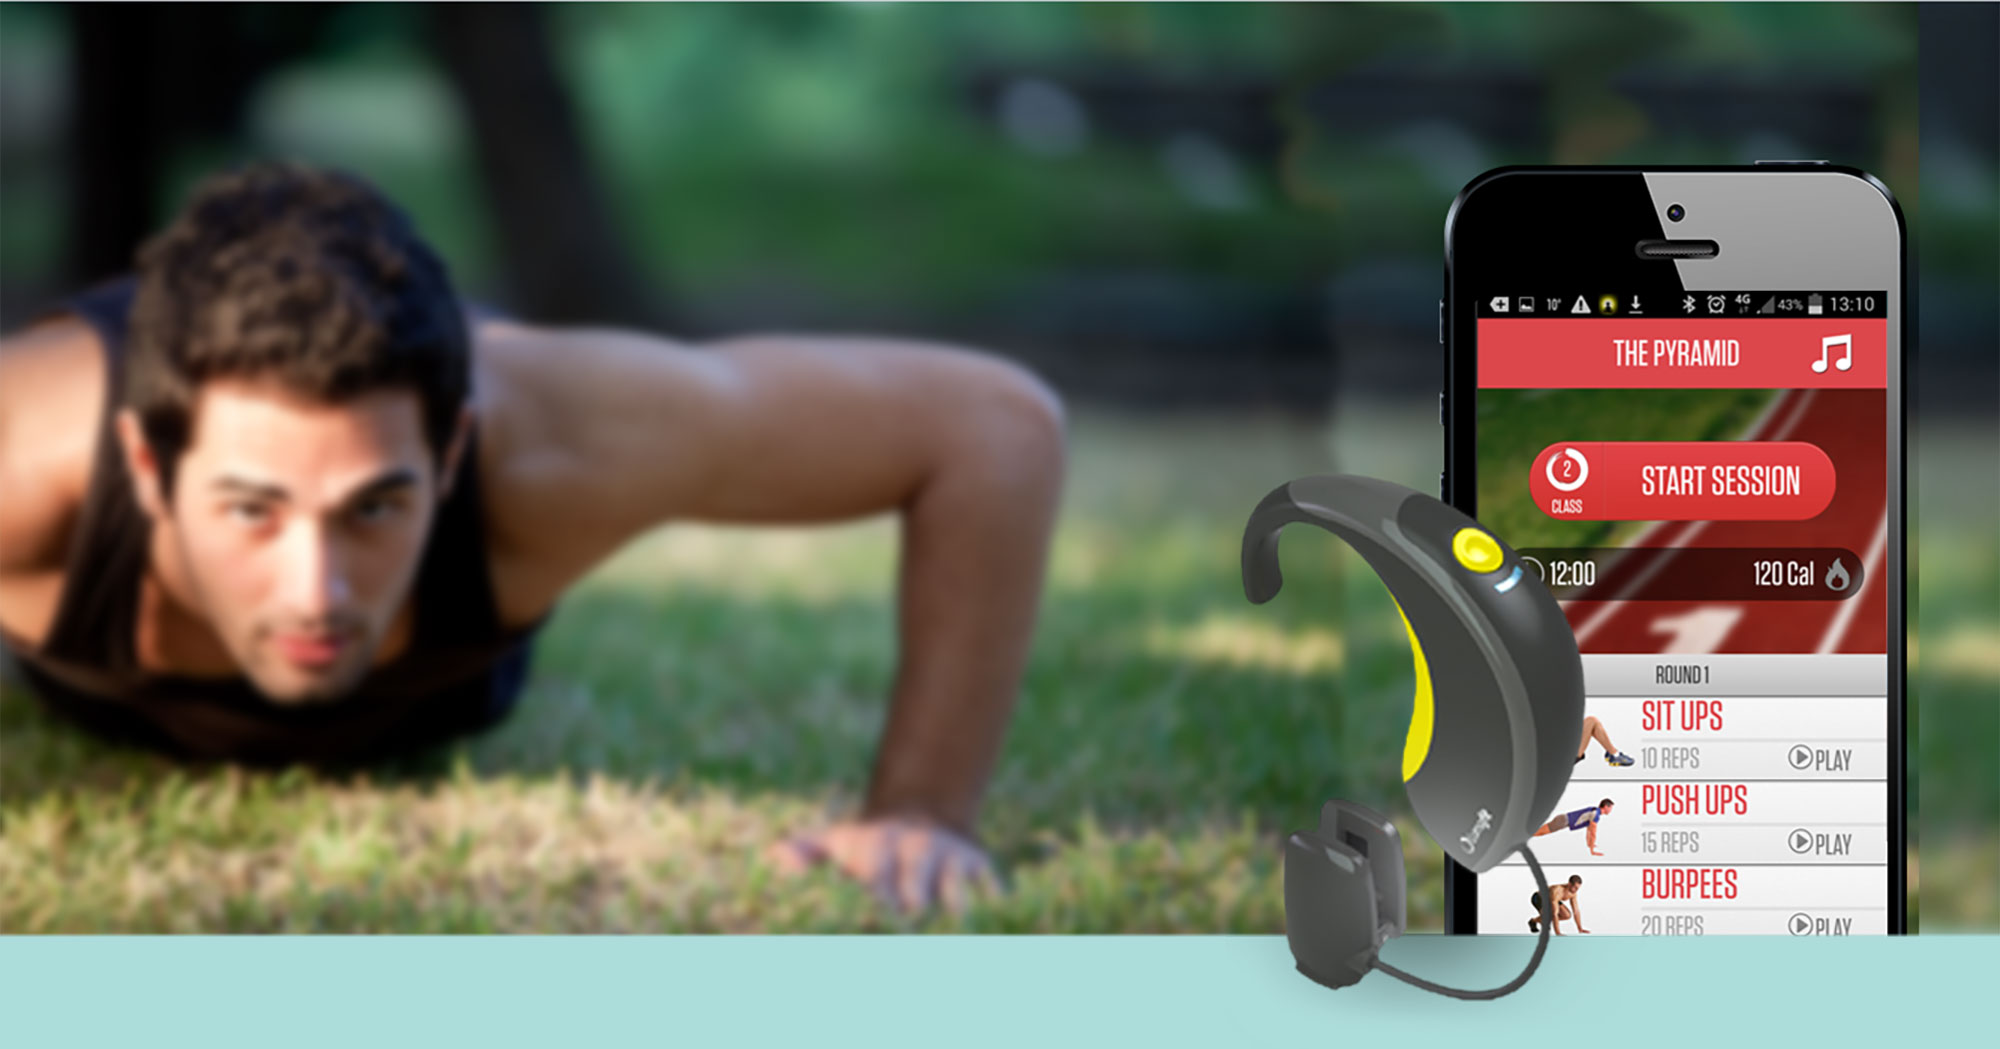 Meditation teacher app and body fitness tracker. Mind and body sensor and tracker. Fitness app for home and gym. Wearable fitness trackers here. The best personal fitness tracker for fitness tracking. Best selling activity tracking apps. Best gym apps and reviews. First meditation sensor and app.